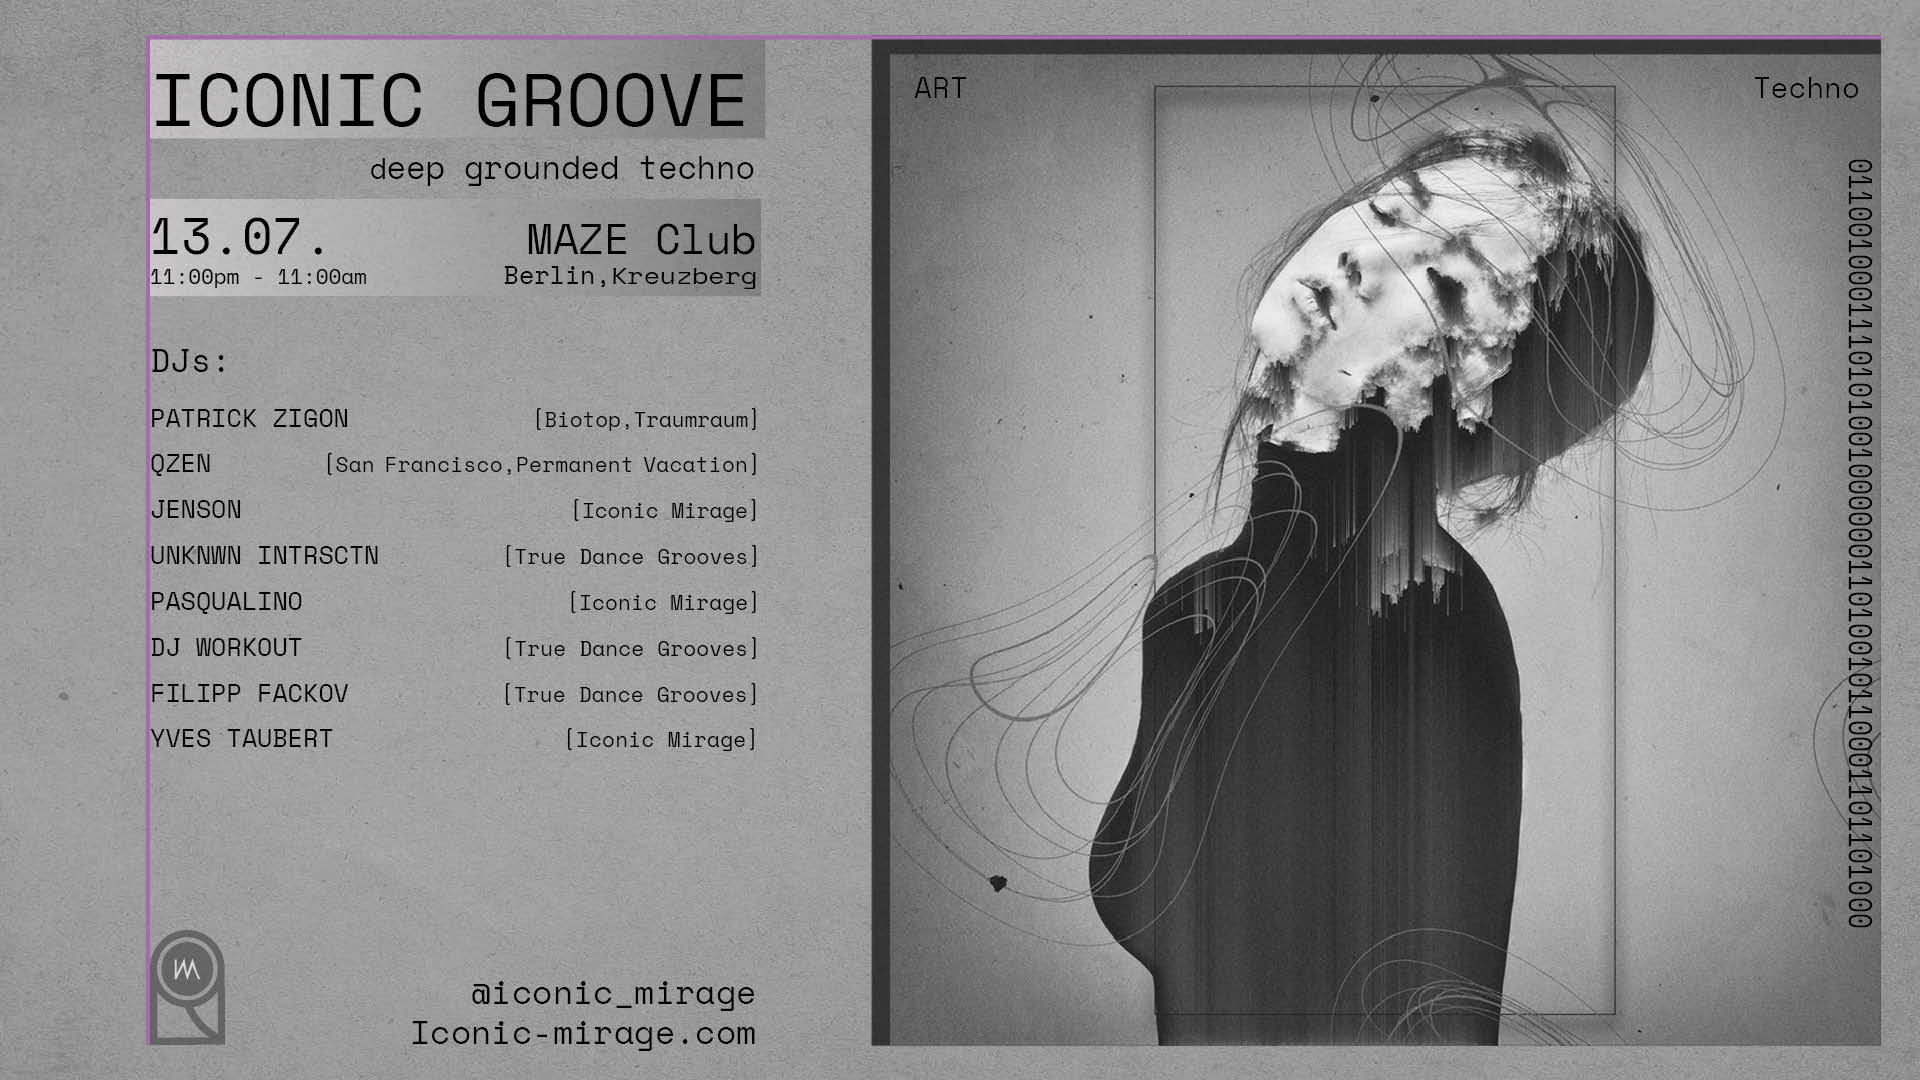 Iconic Groove Techno Event Flyer 13.07.2019